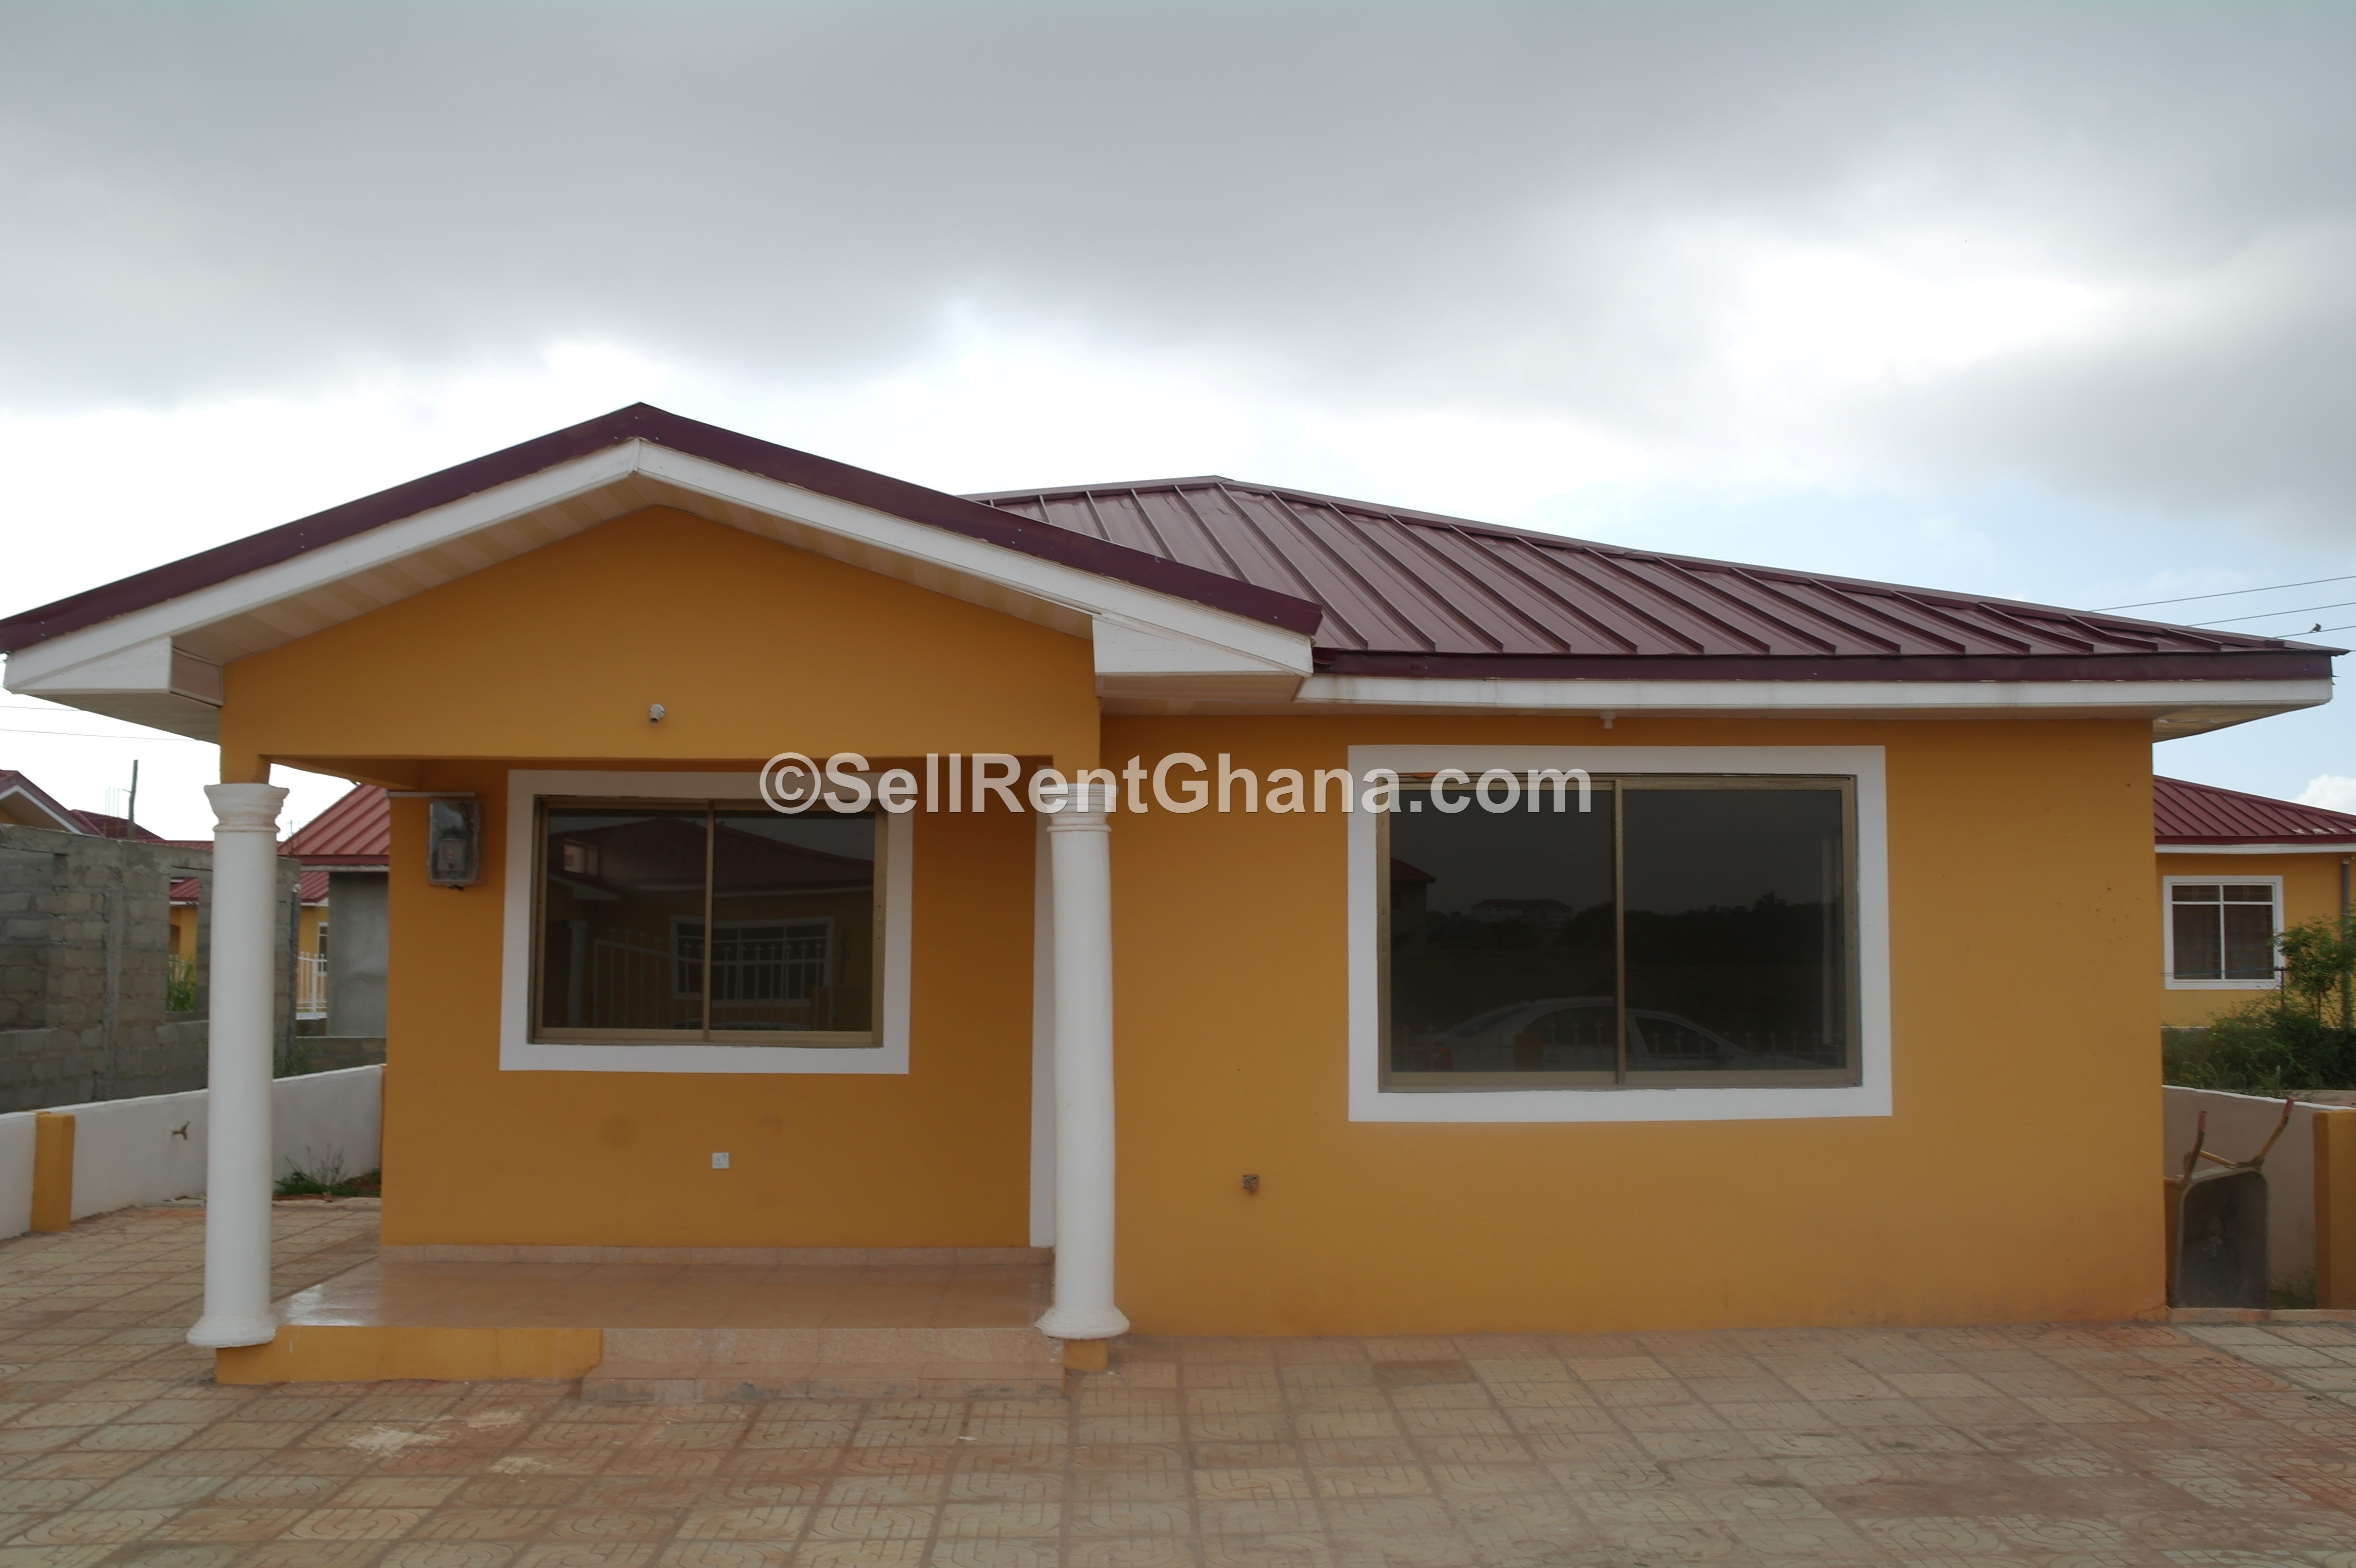 5 bedroom townhouse for sale tema sellrent ghana for 5 bedroom townhouse